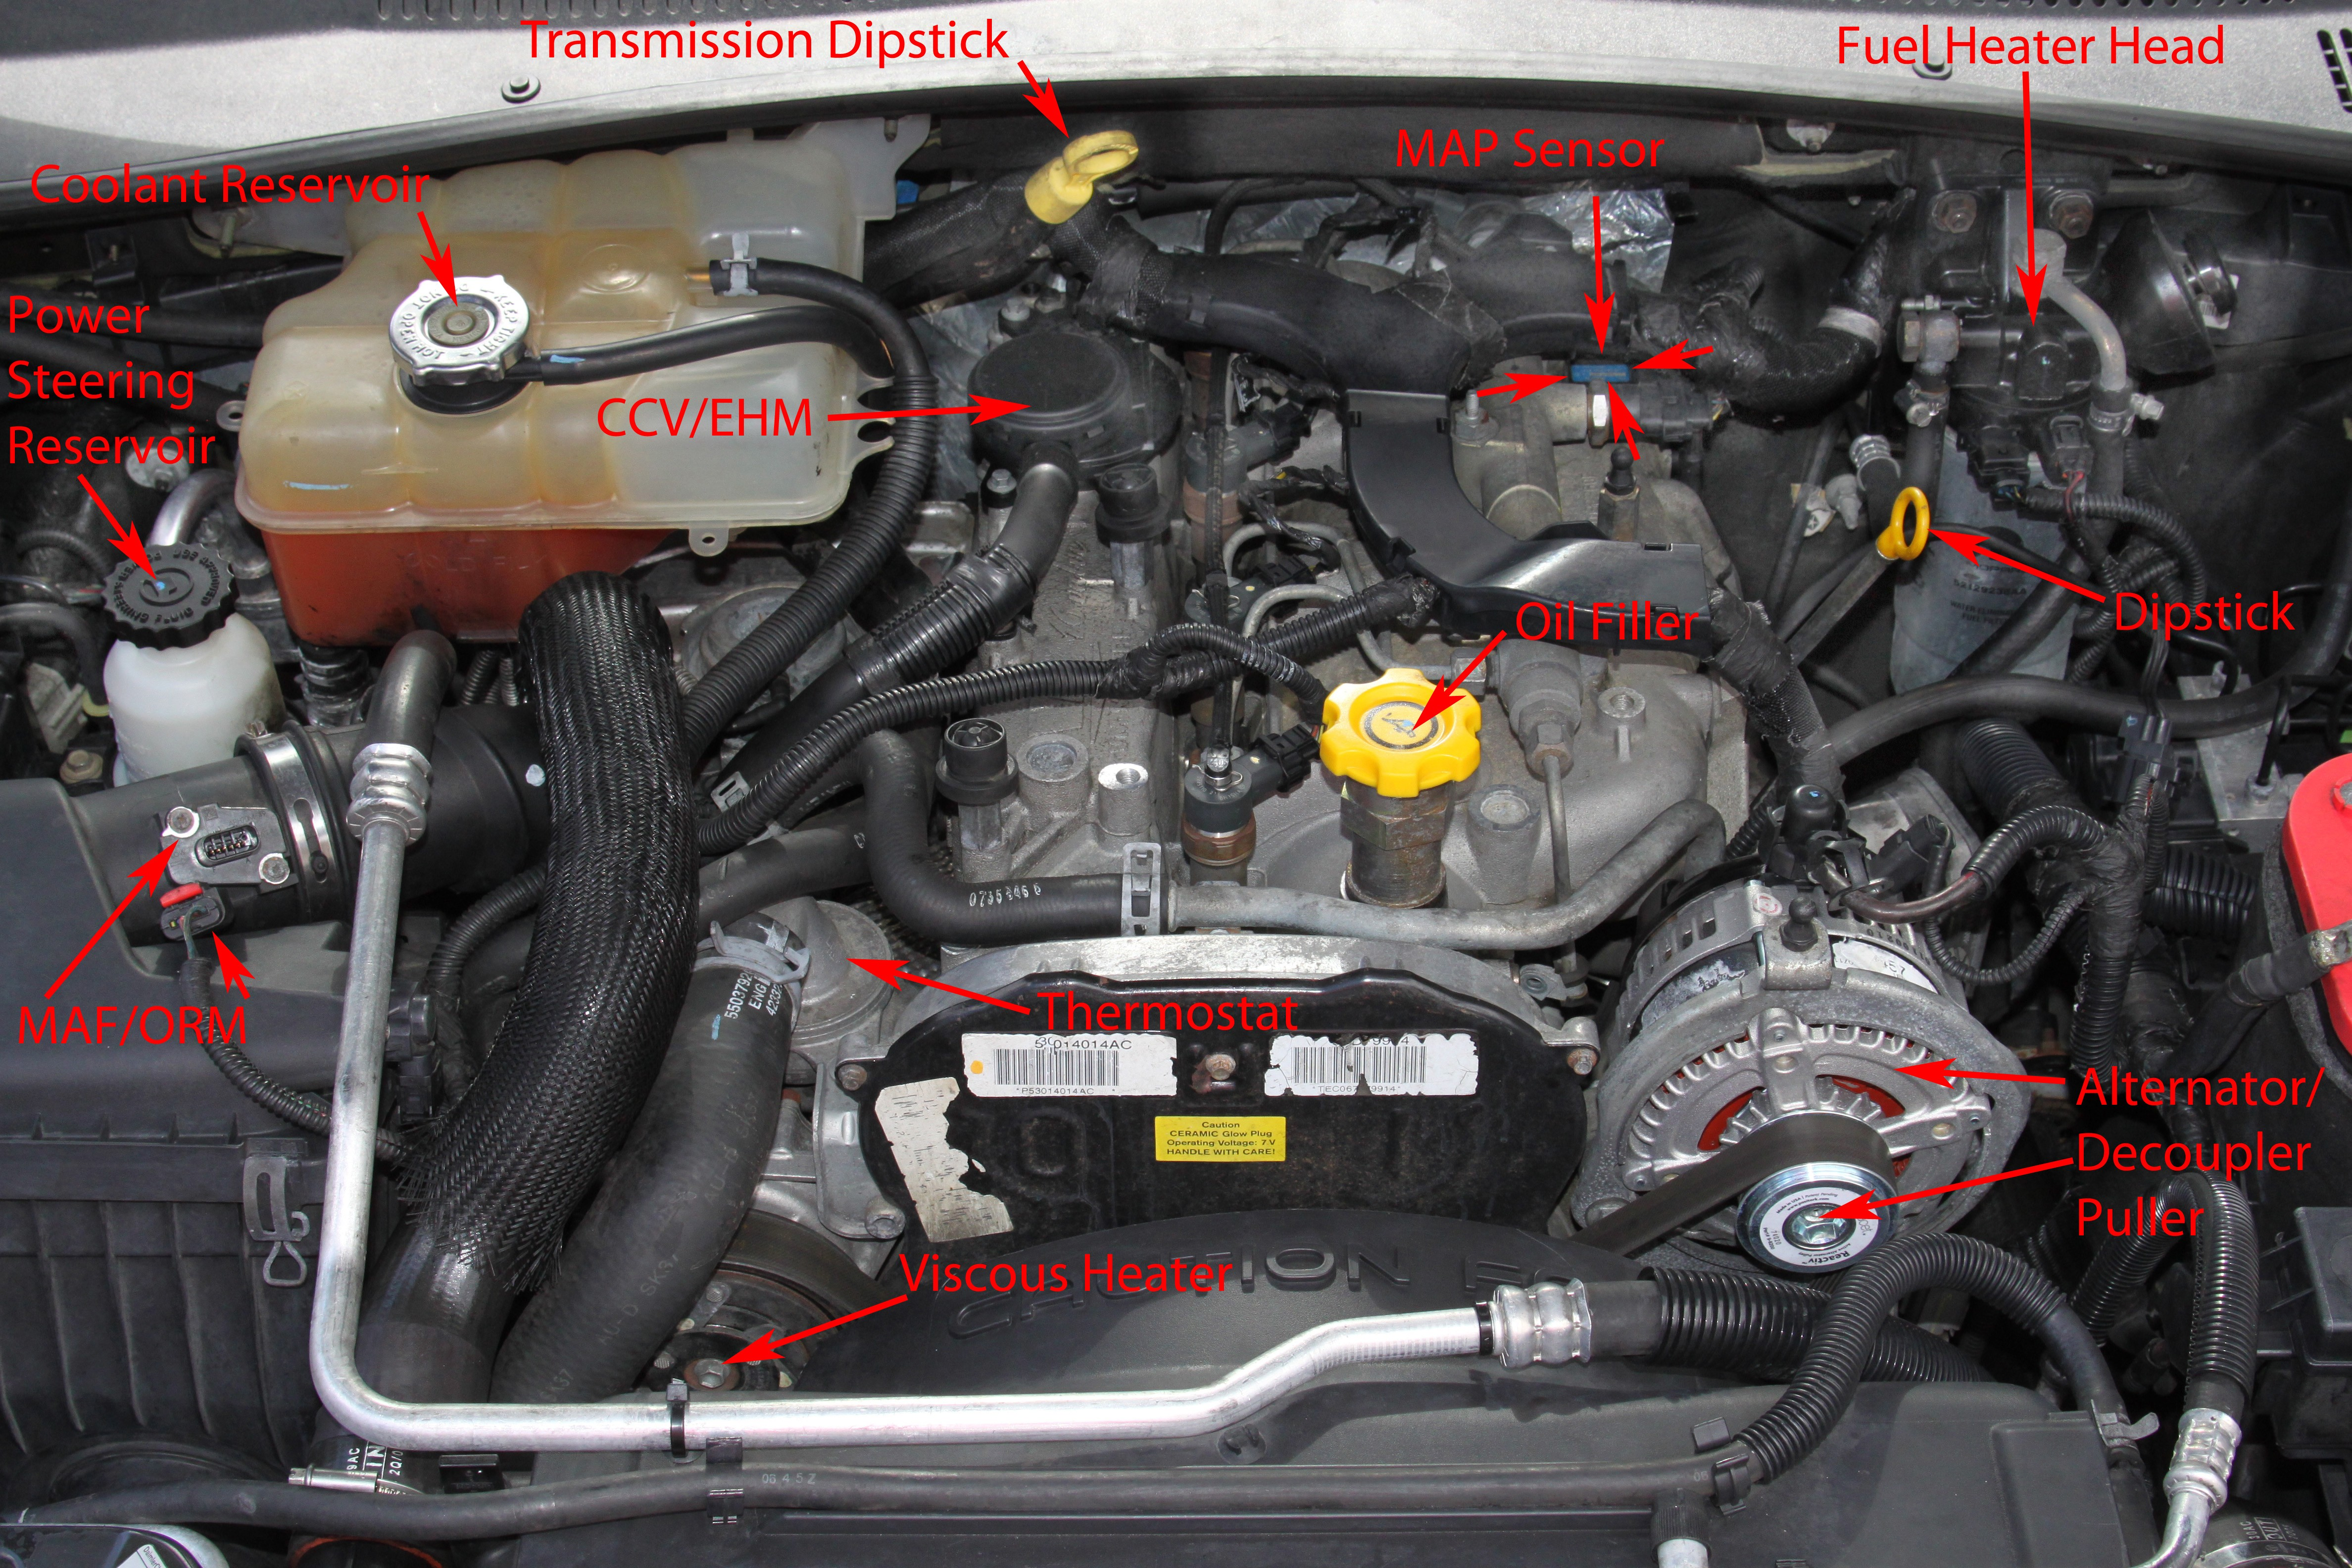 2011 Jeep Liberty Engine Diagram Lost Jeeps • View topic Sam S Crd Noob Guide Of 2011 Jeep Liberty Engine Diagram